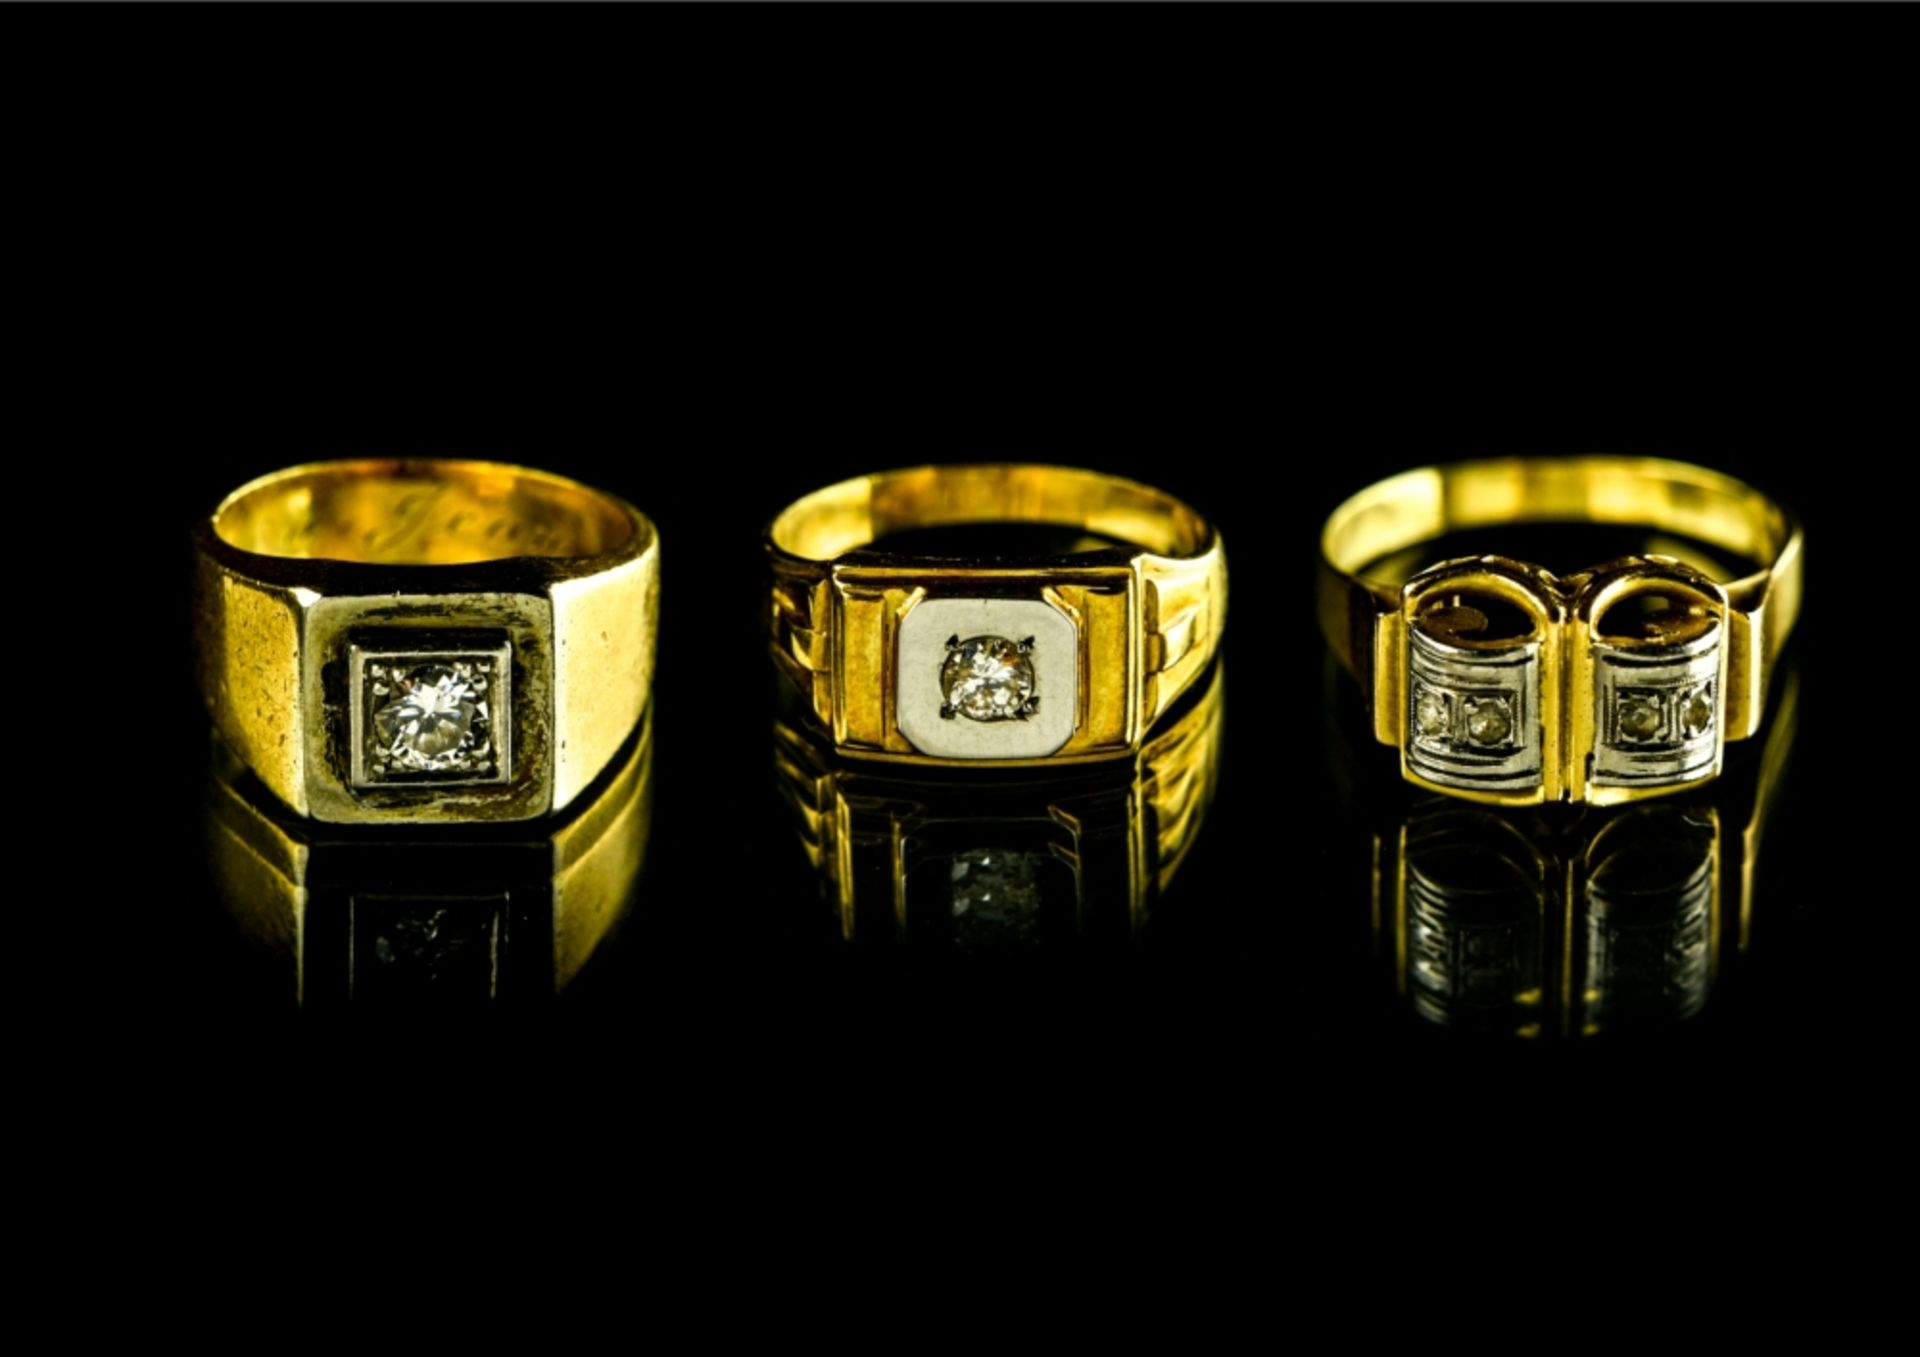 """Lot of 3 rings 18 kt white gold. 1. Signet ring without a hallmark, inscribed """"Yvette ˆ Jean"""""""